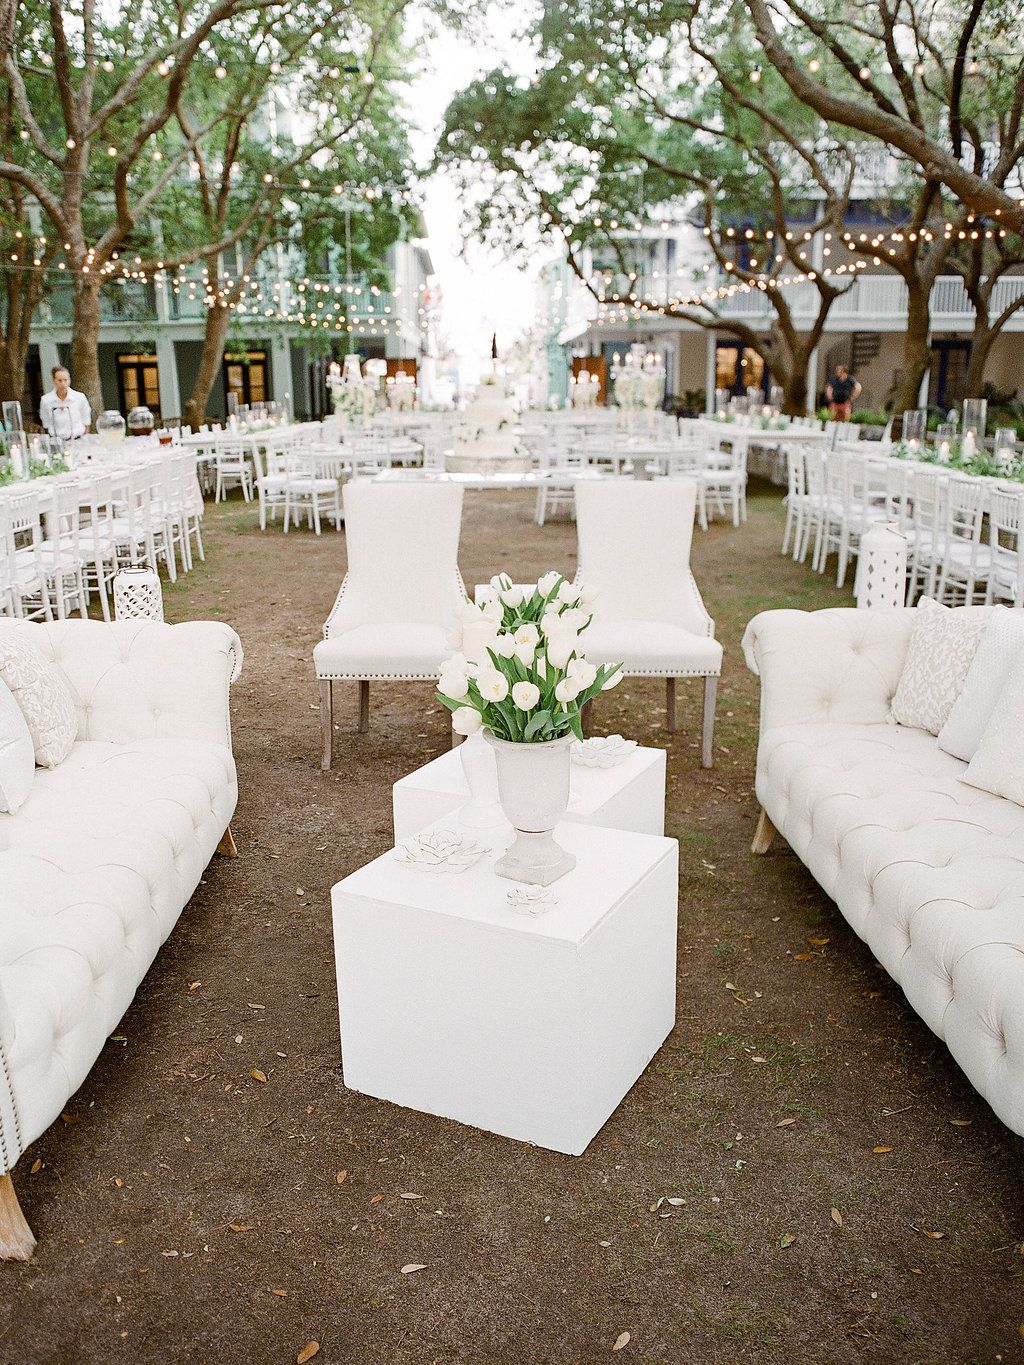 Seaside DeBicci Lawn Spring Wedding in Seaside White Wedding decor ...